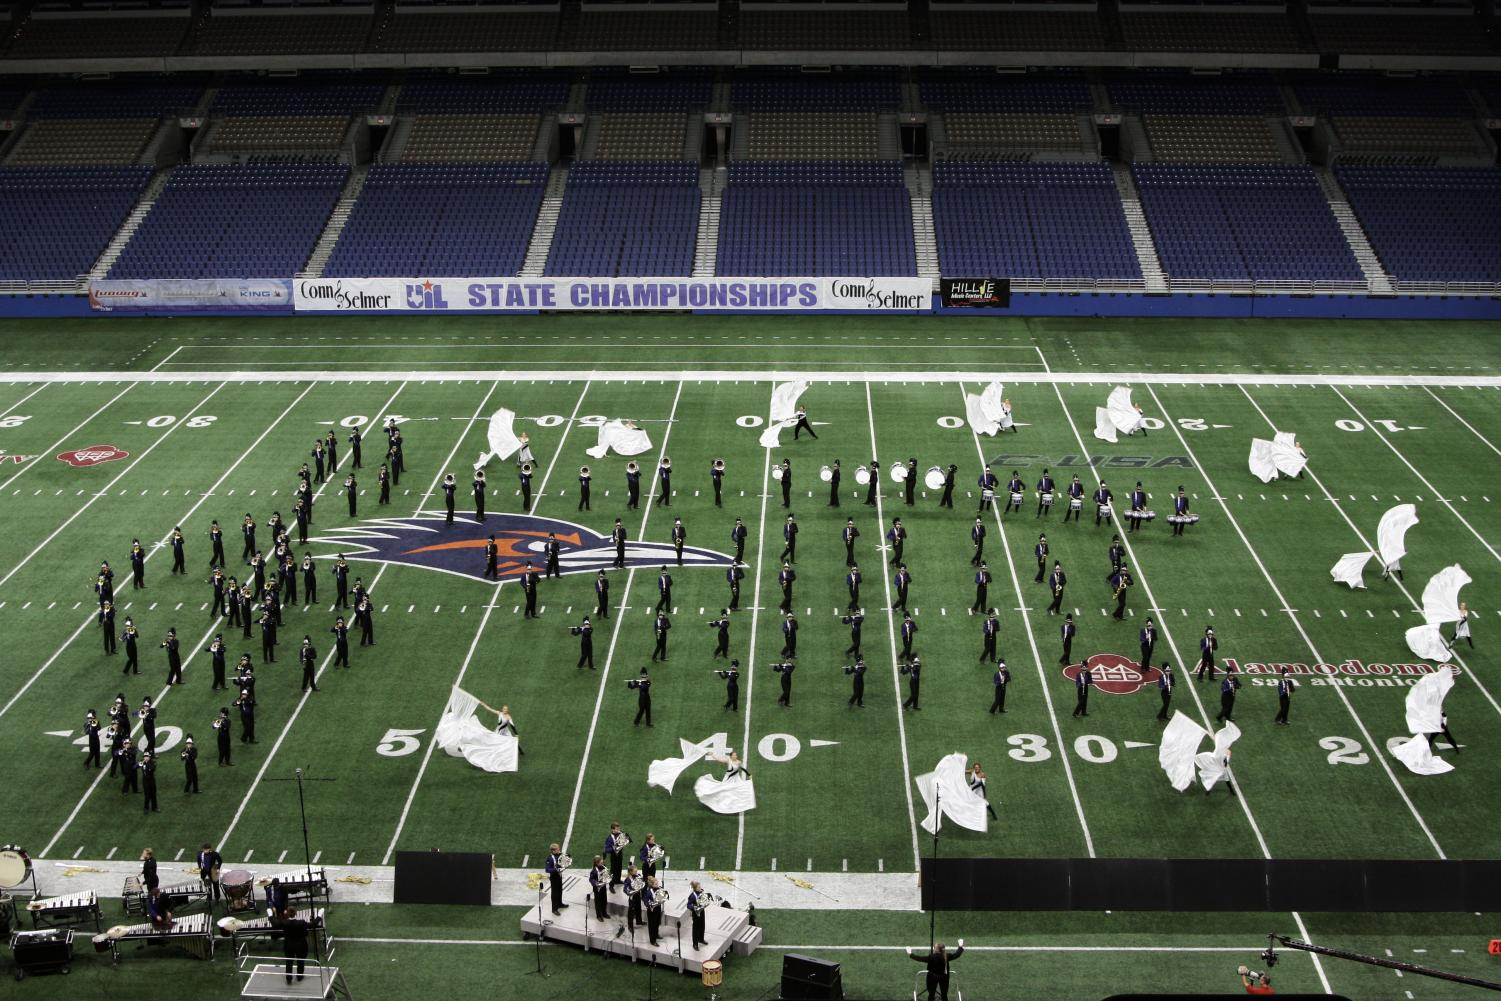 The band creates a treble clef and staff across the field during the ballad.